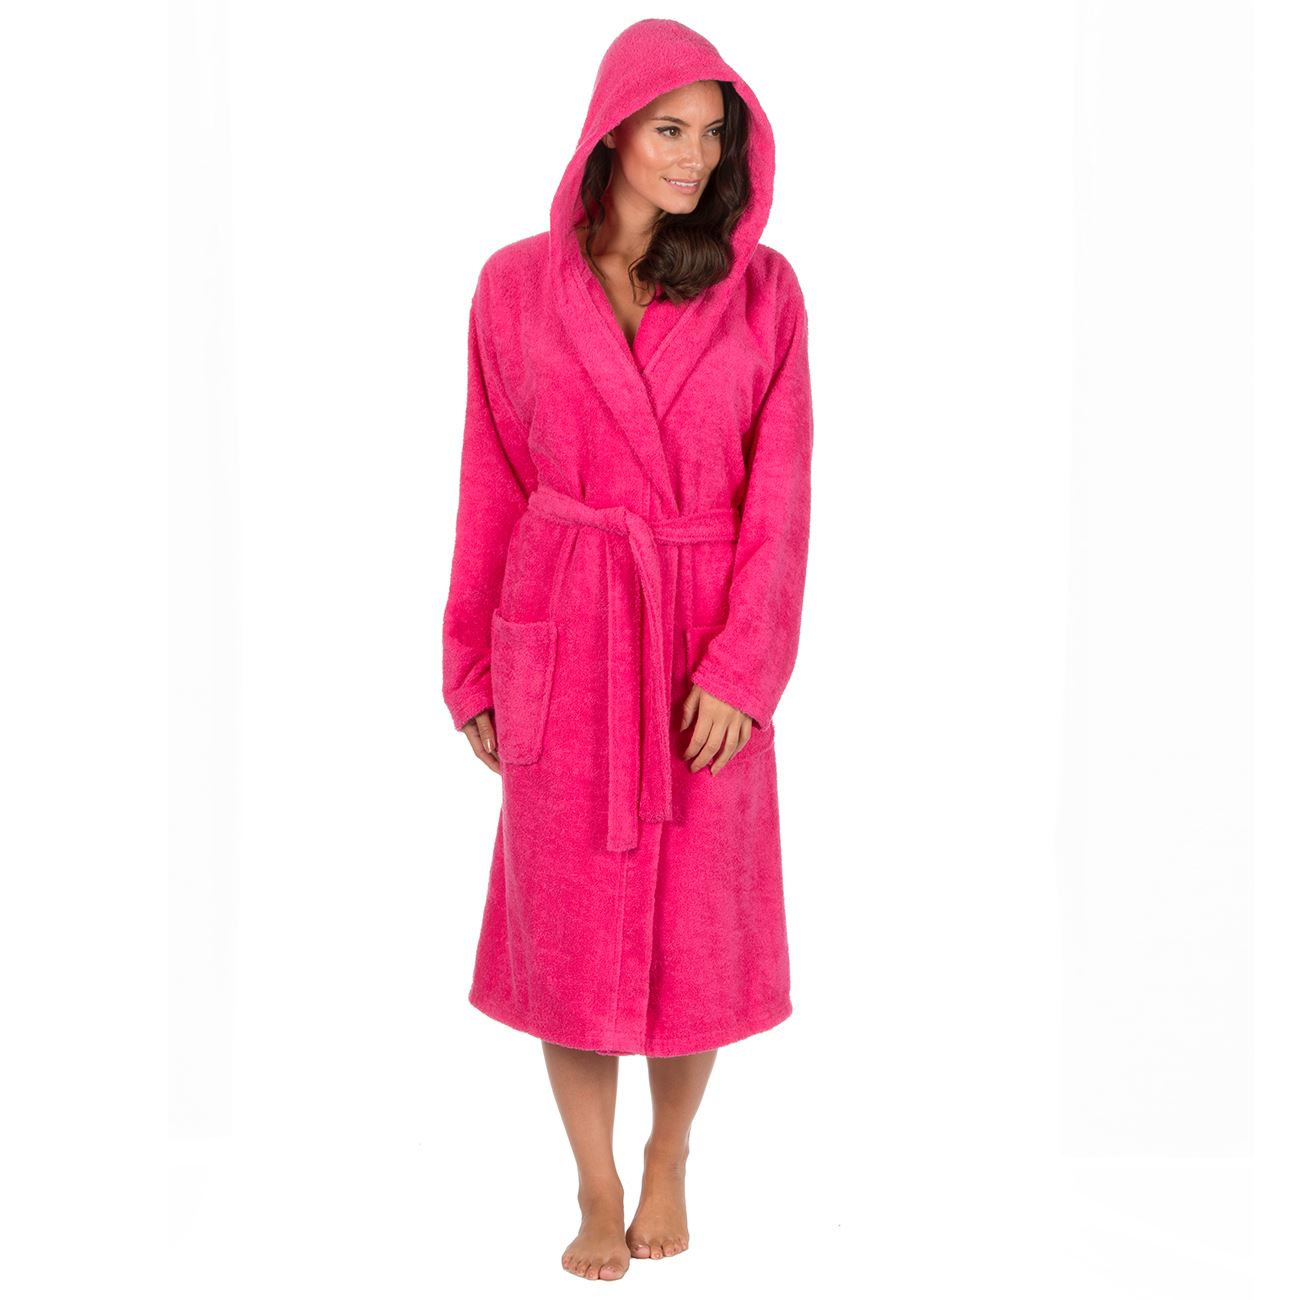 Womens-Ladies-100-Cotton-Terry-Towelling-Bath-Robe-Dressing-Gown-Size-8-22